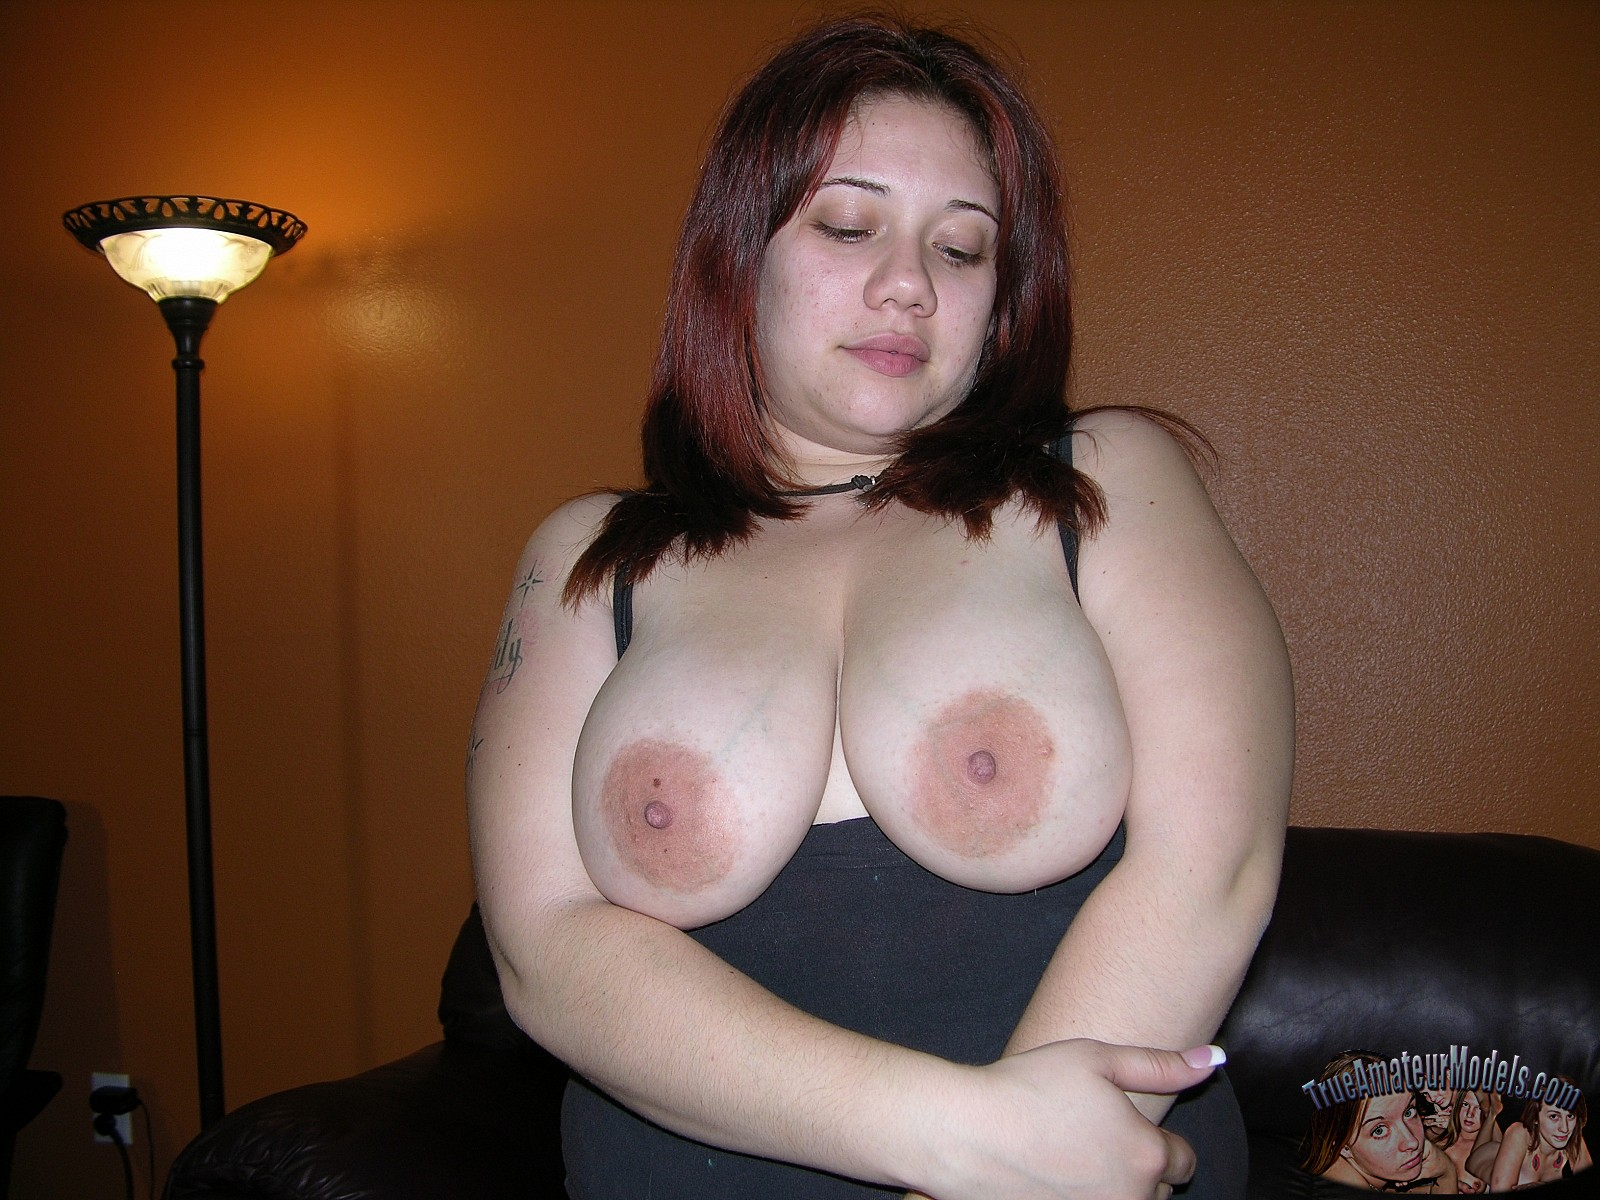 Amatuer nude thick girls #13